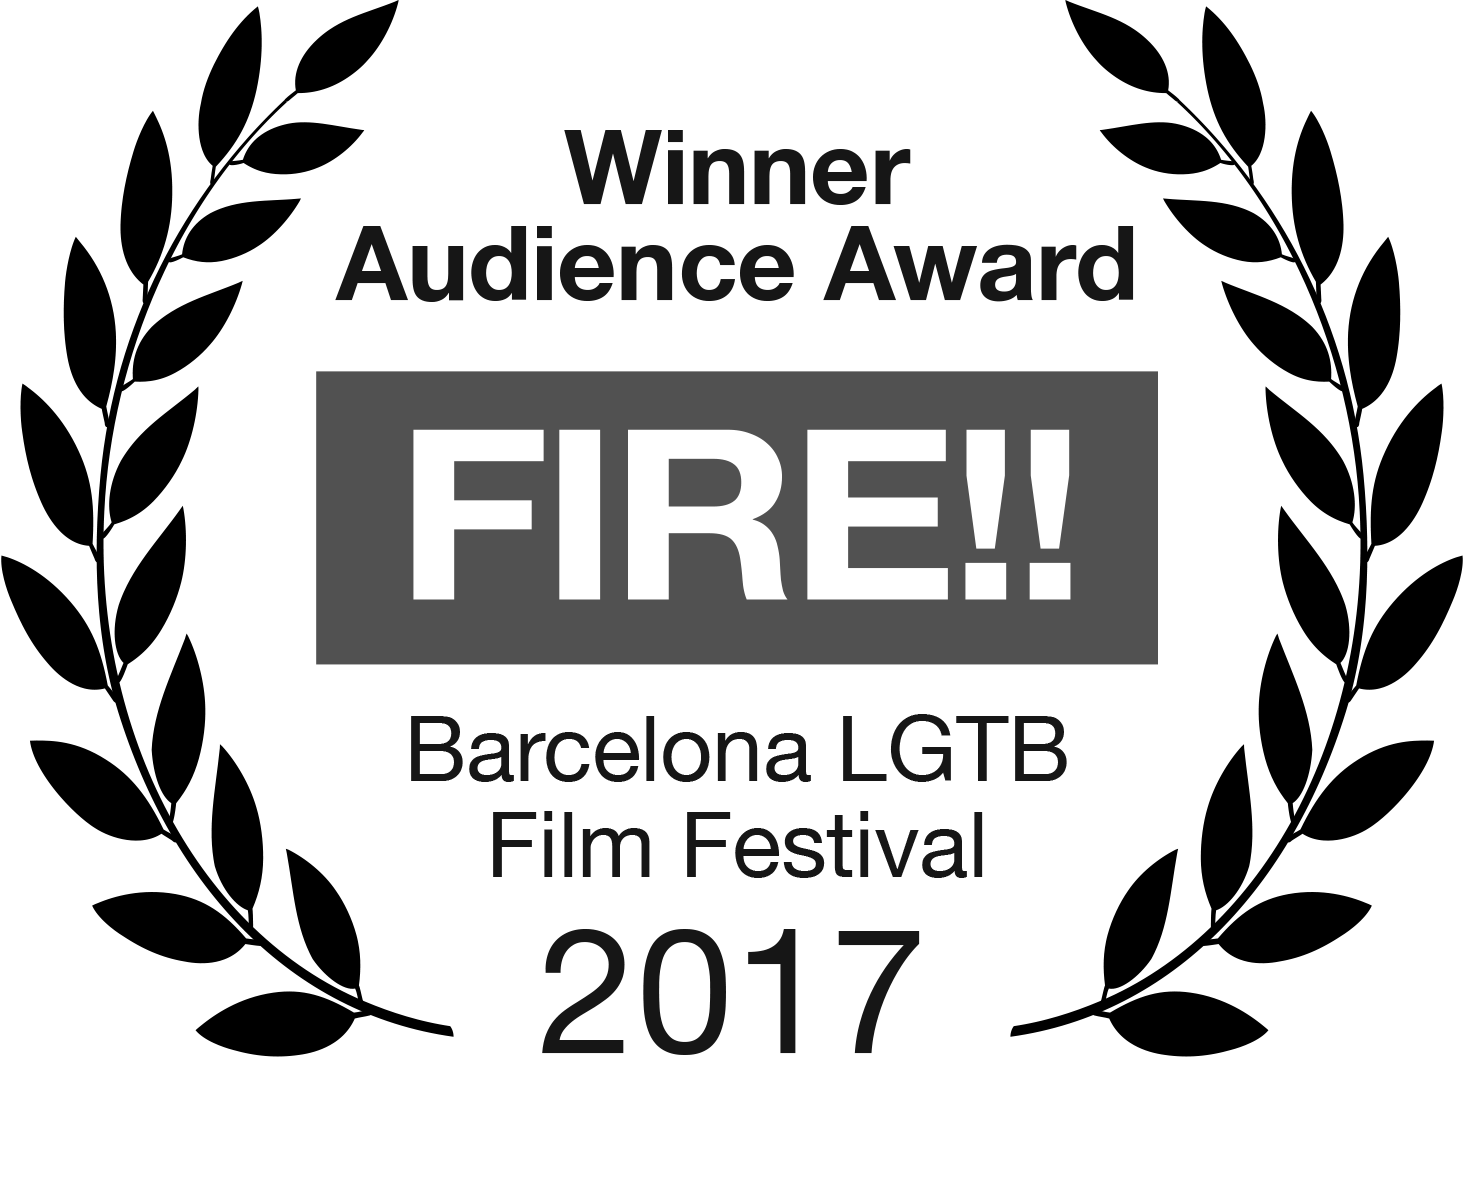 MOSTRA-Fire_Barcelona_2017_audienceaward.png